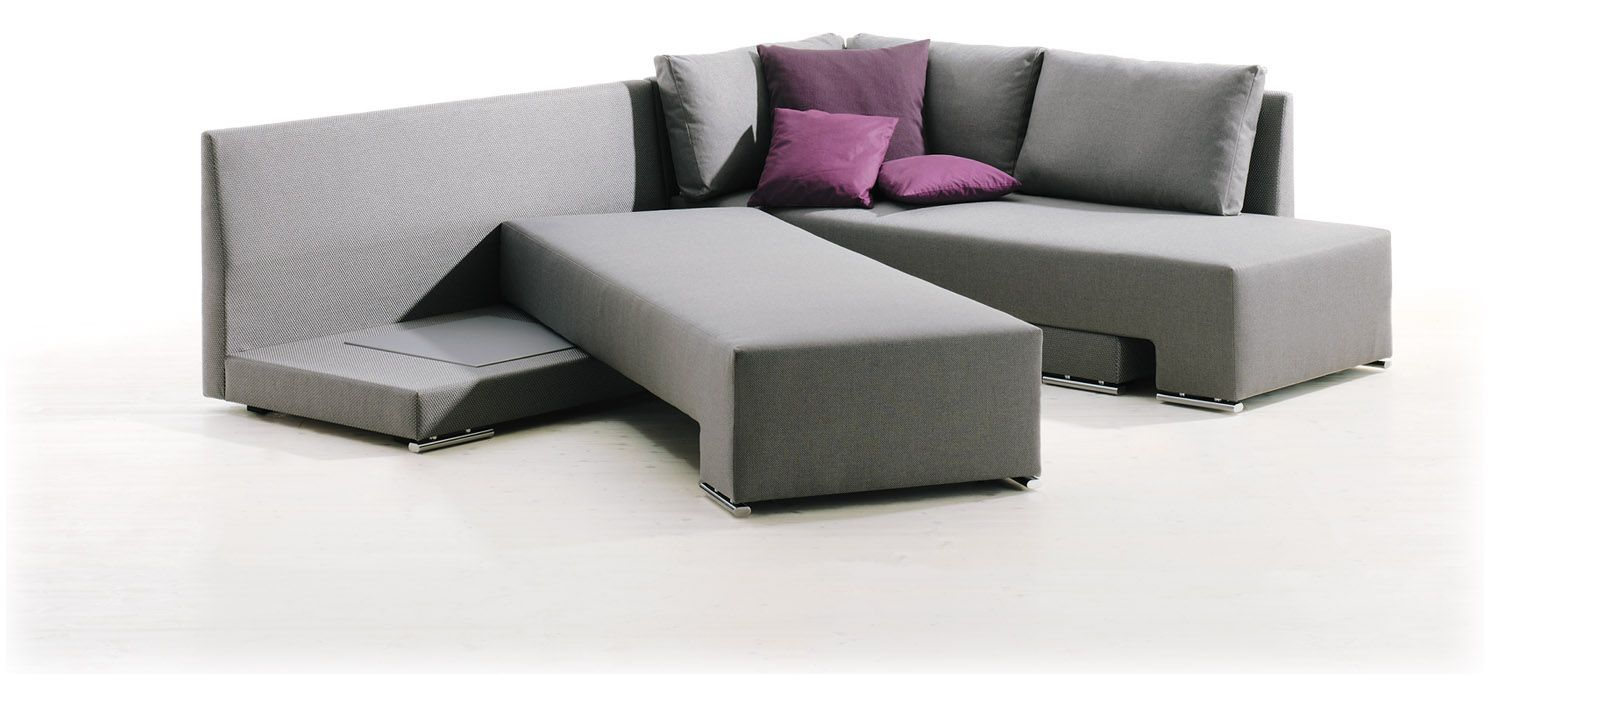 ... Design Schlafsofa Daybed Elegant Kombination. The Vento Sofa Bed By  Thomas Althaus For Die Collection Is A Contemporary Sofa That Transforms